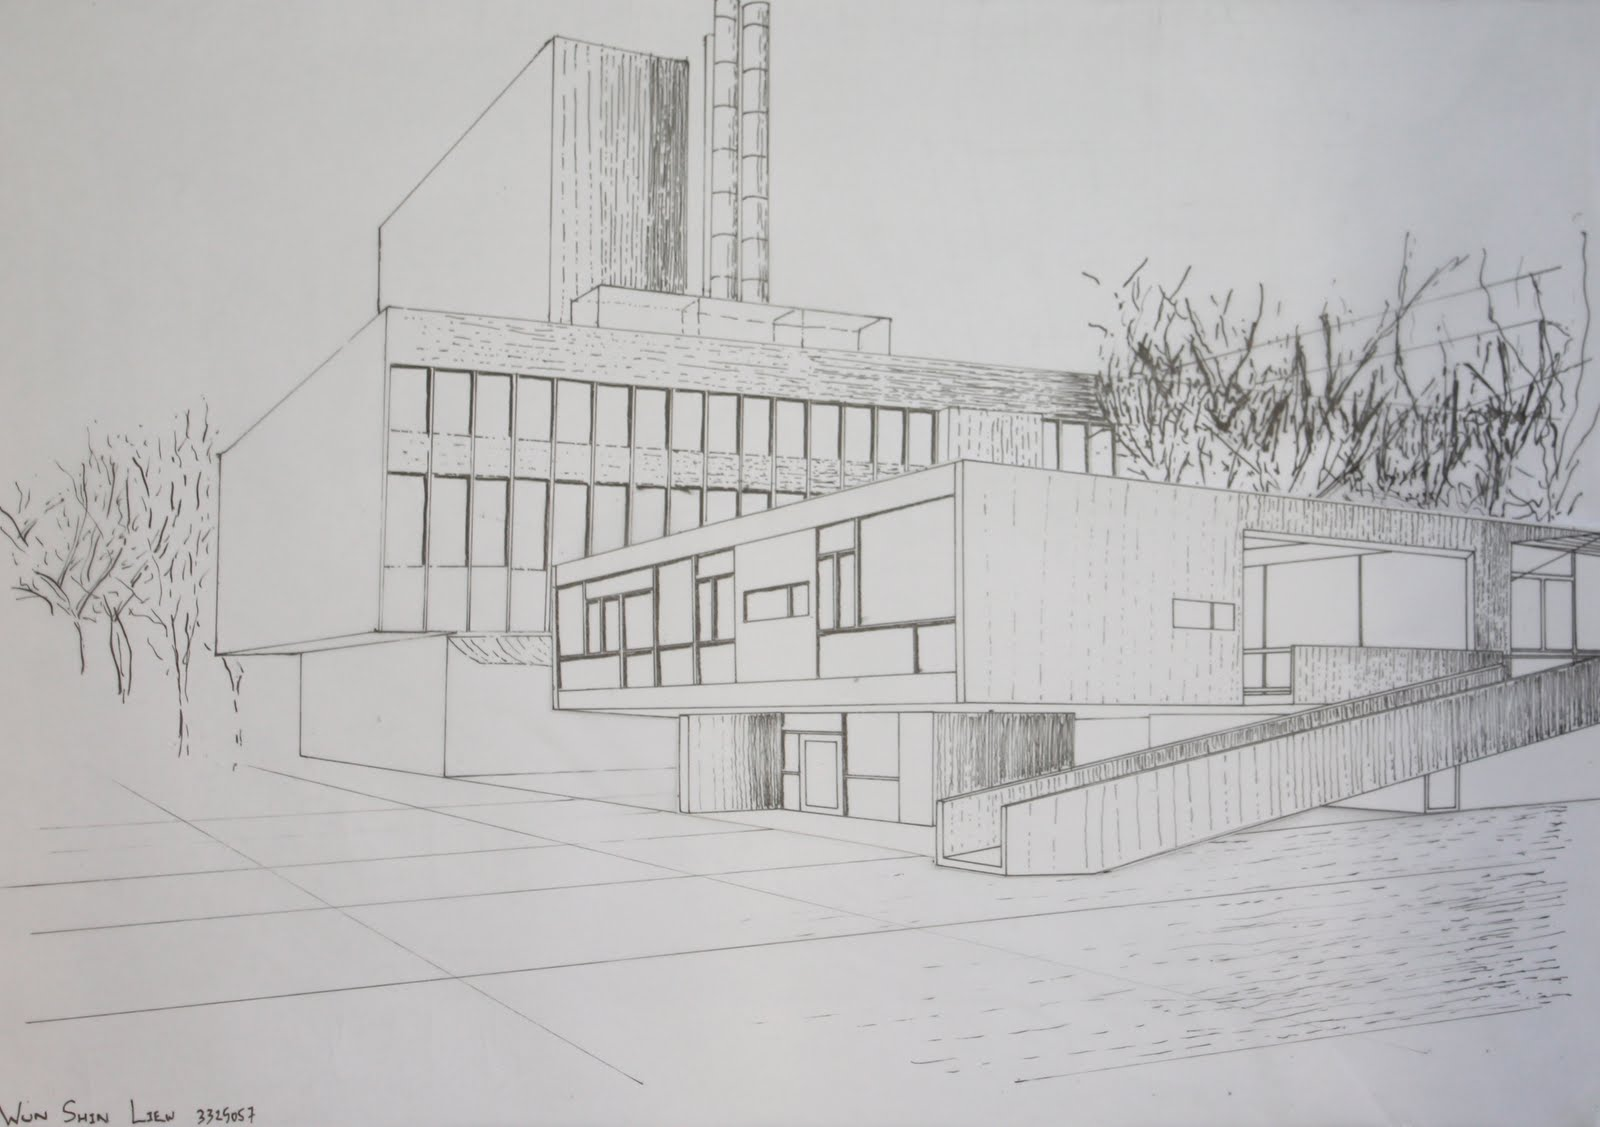 wun shin liew 2nd workshop architectural drawing rose seidler